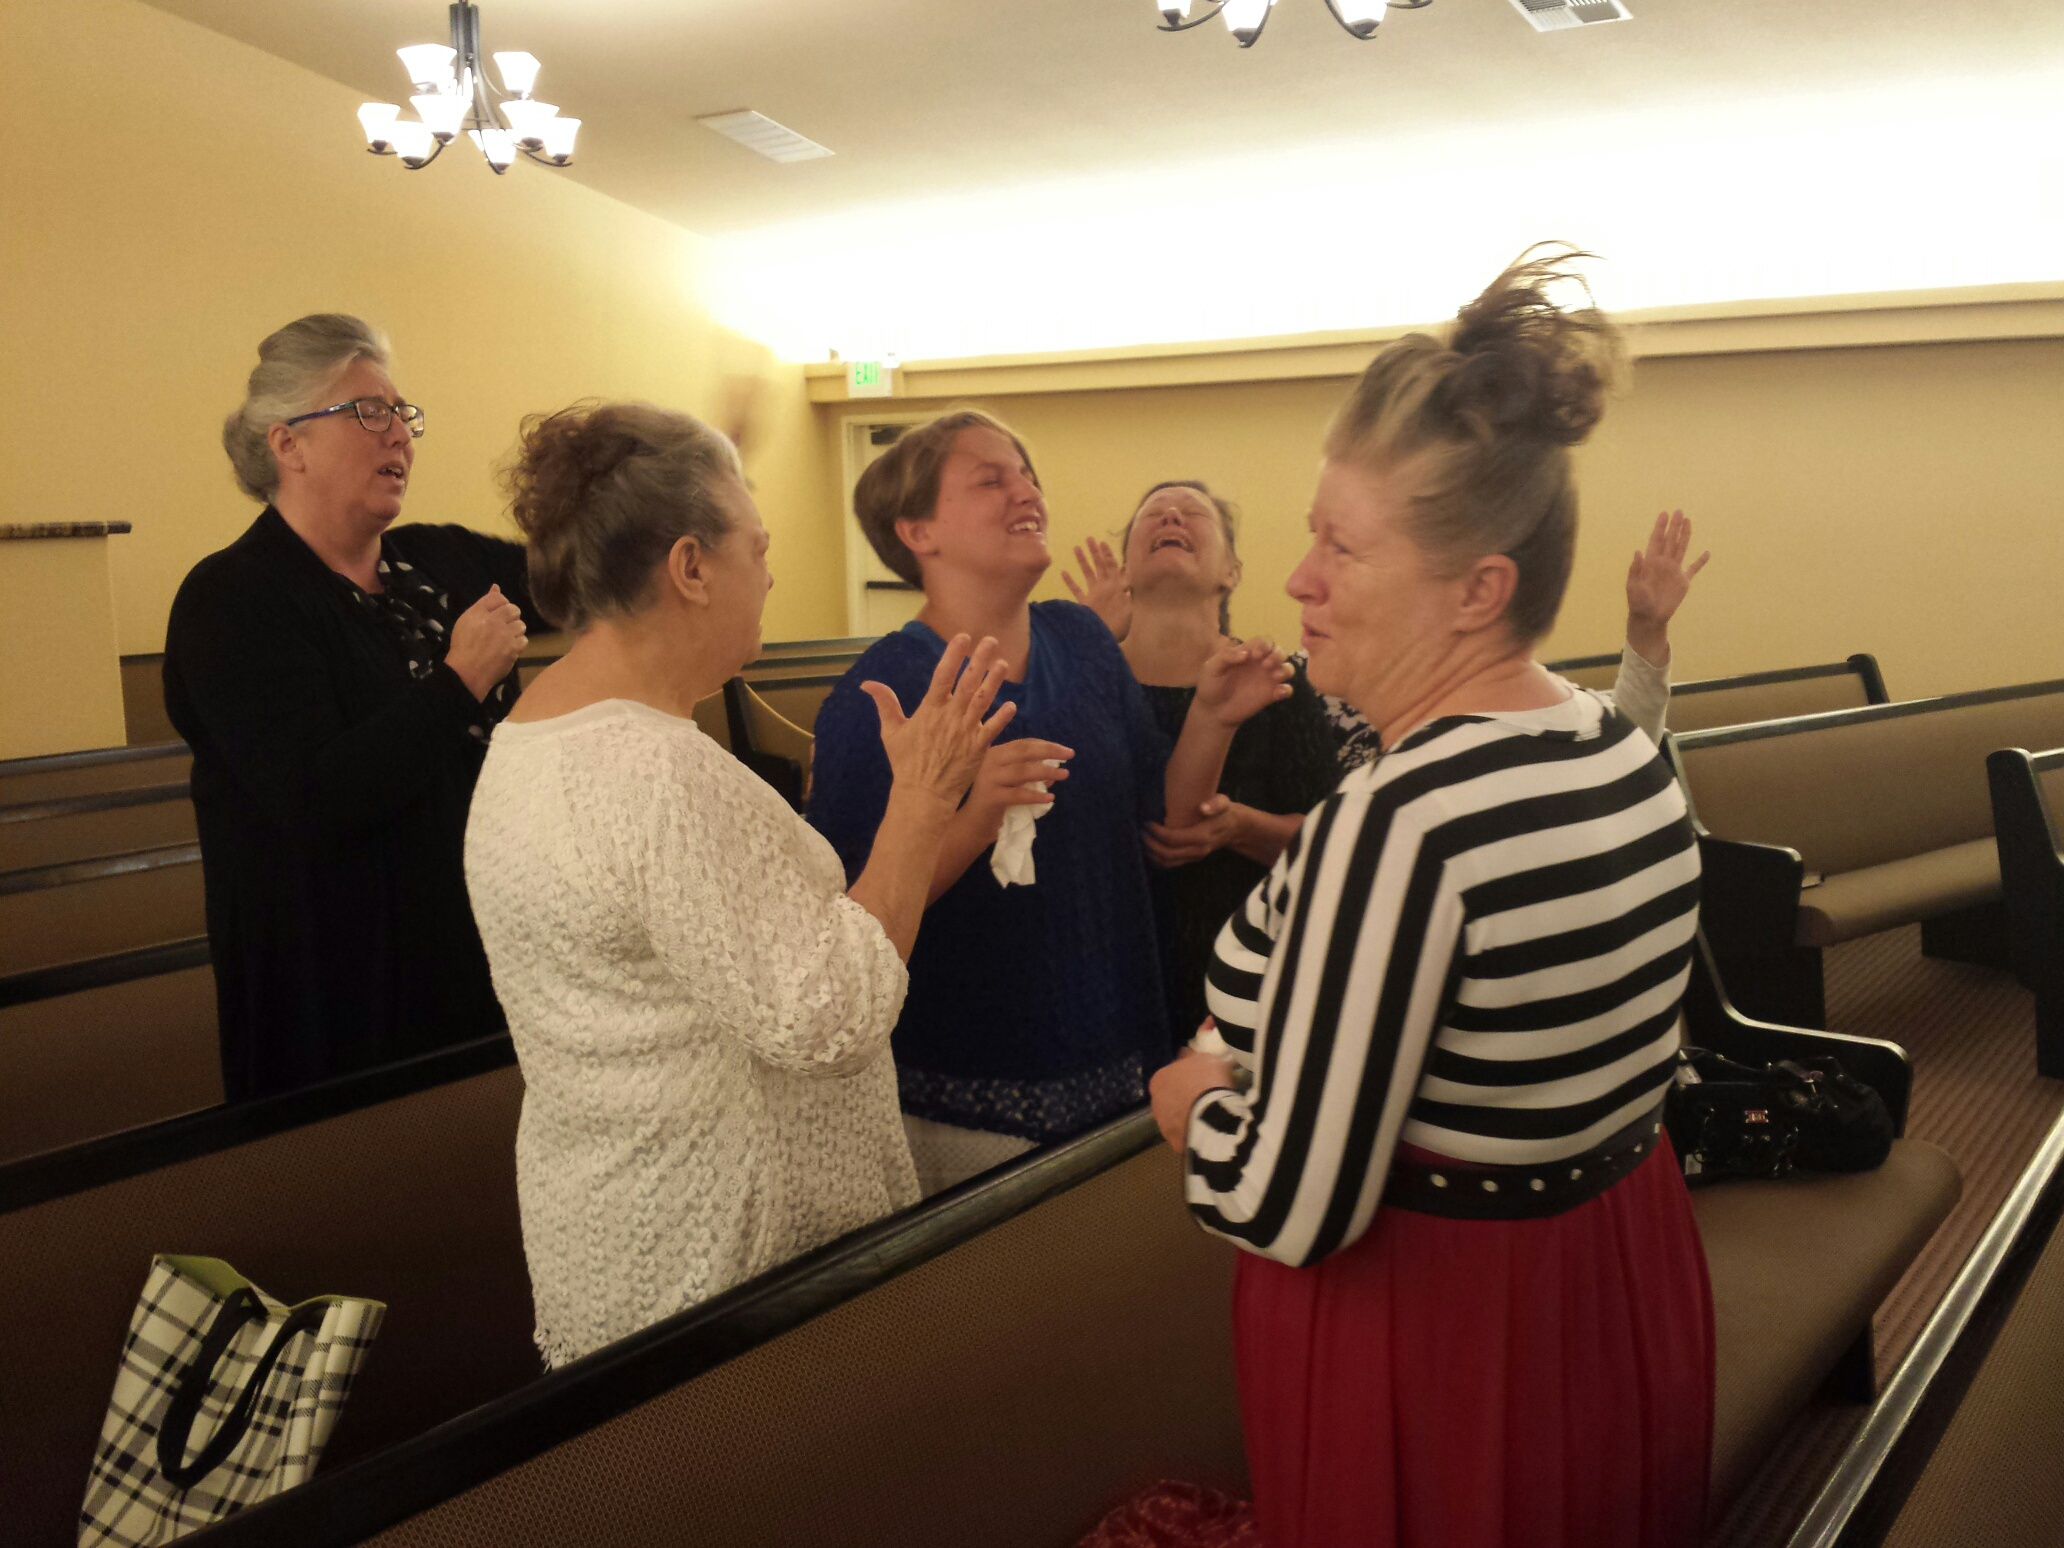 Christie Young seeking for the Holy Ghost